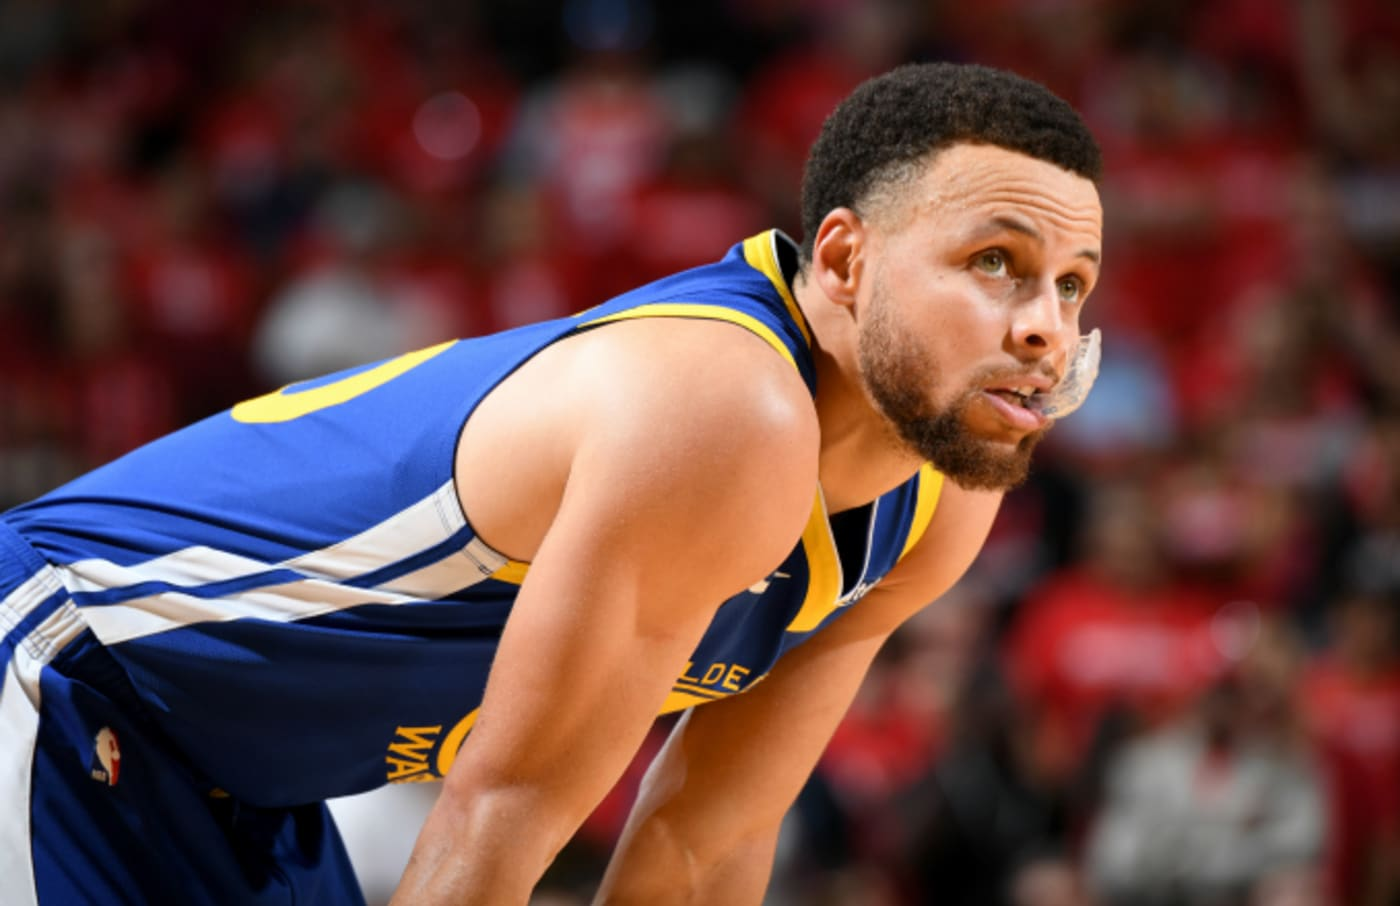 Stephen Curry #30 of the Golden State Warriors looks on against the Houston Rockets